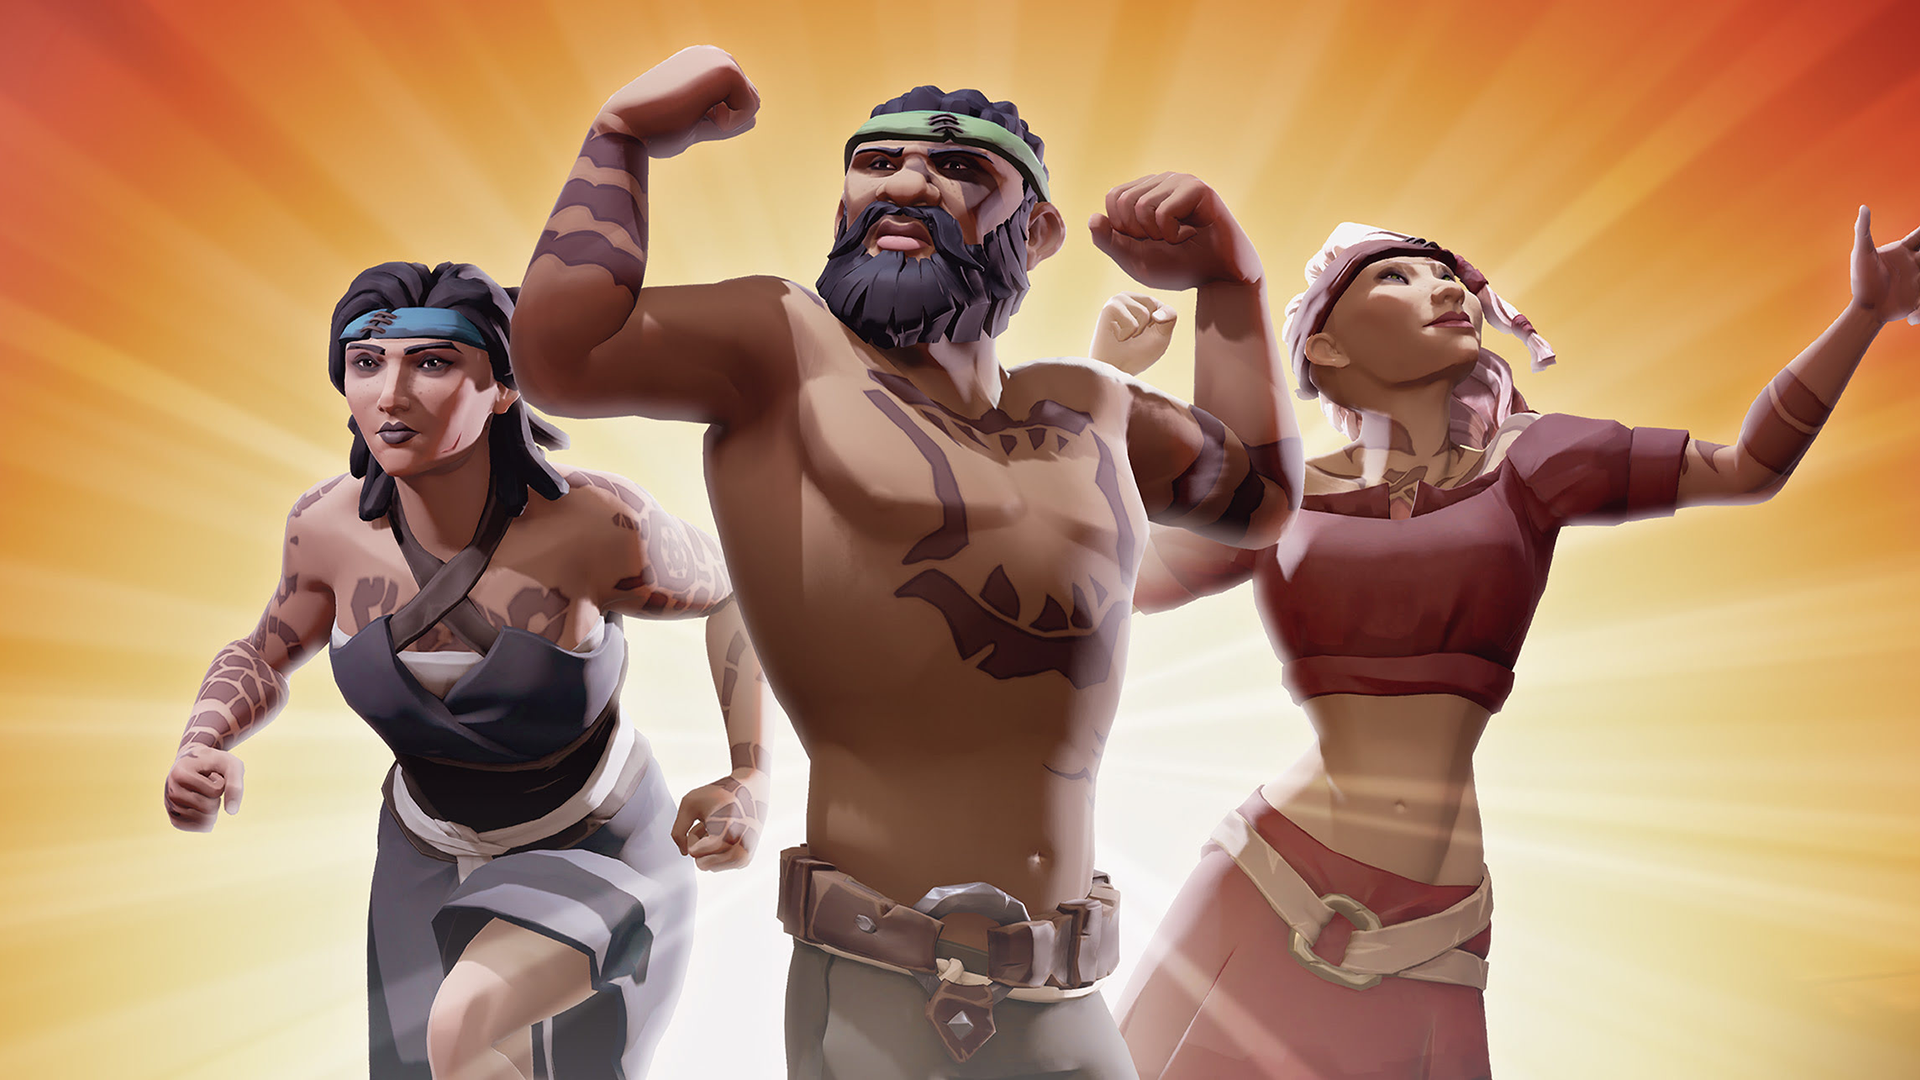 The Plunder Games Event